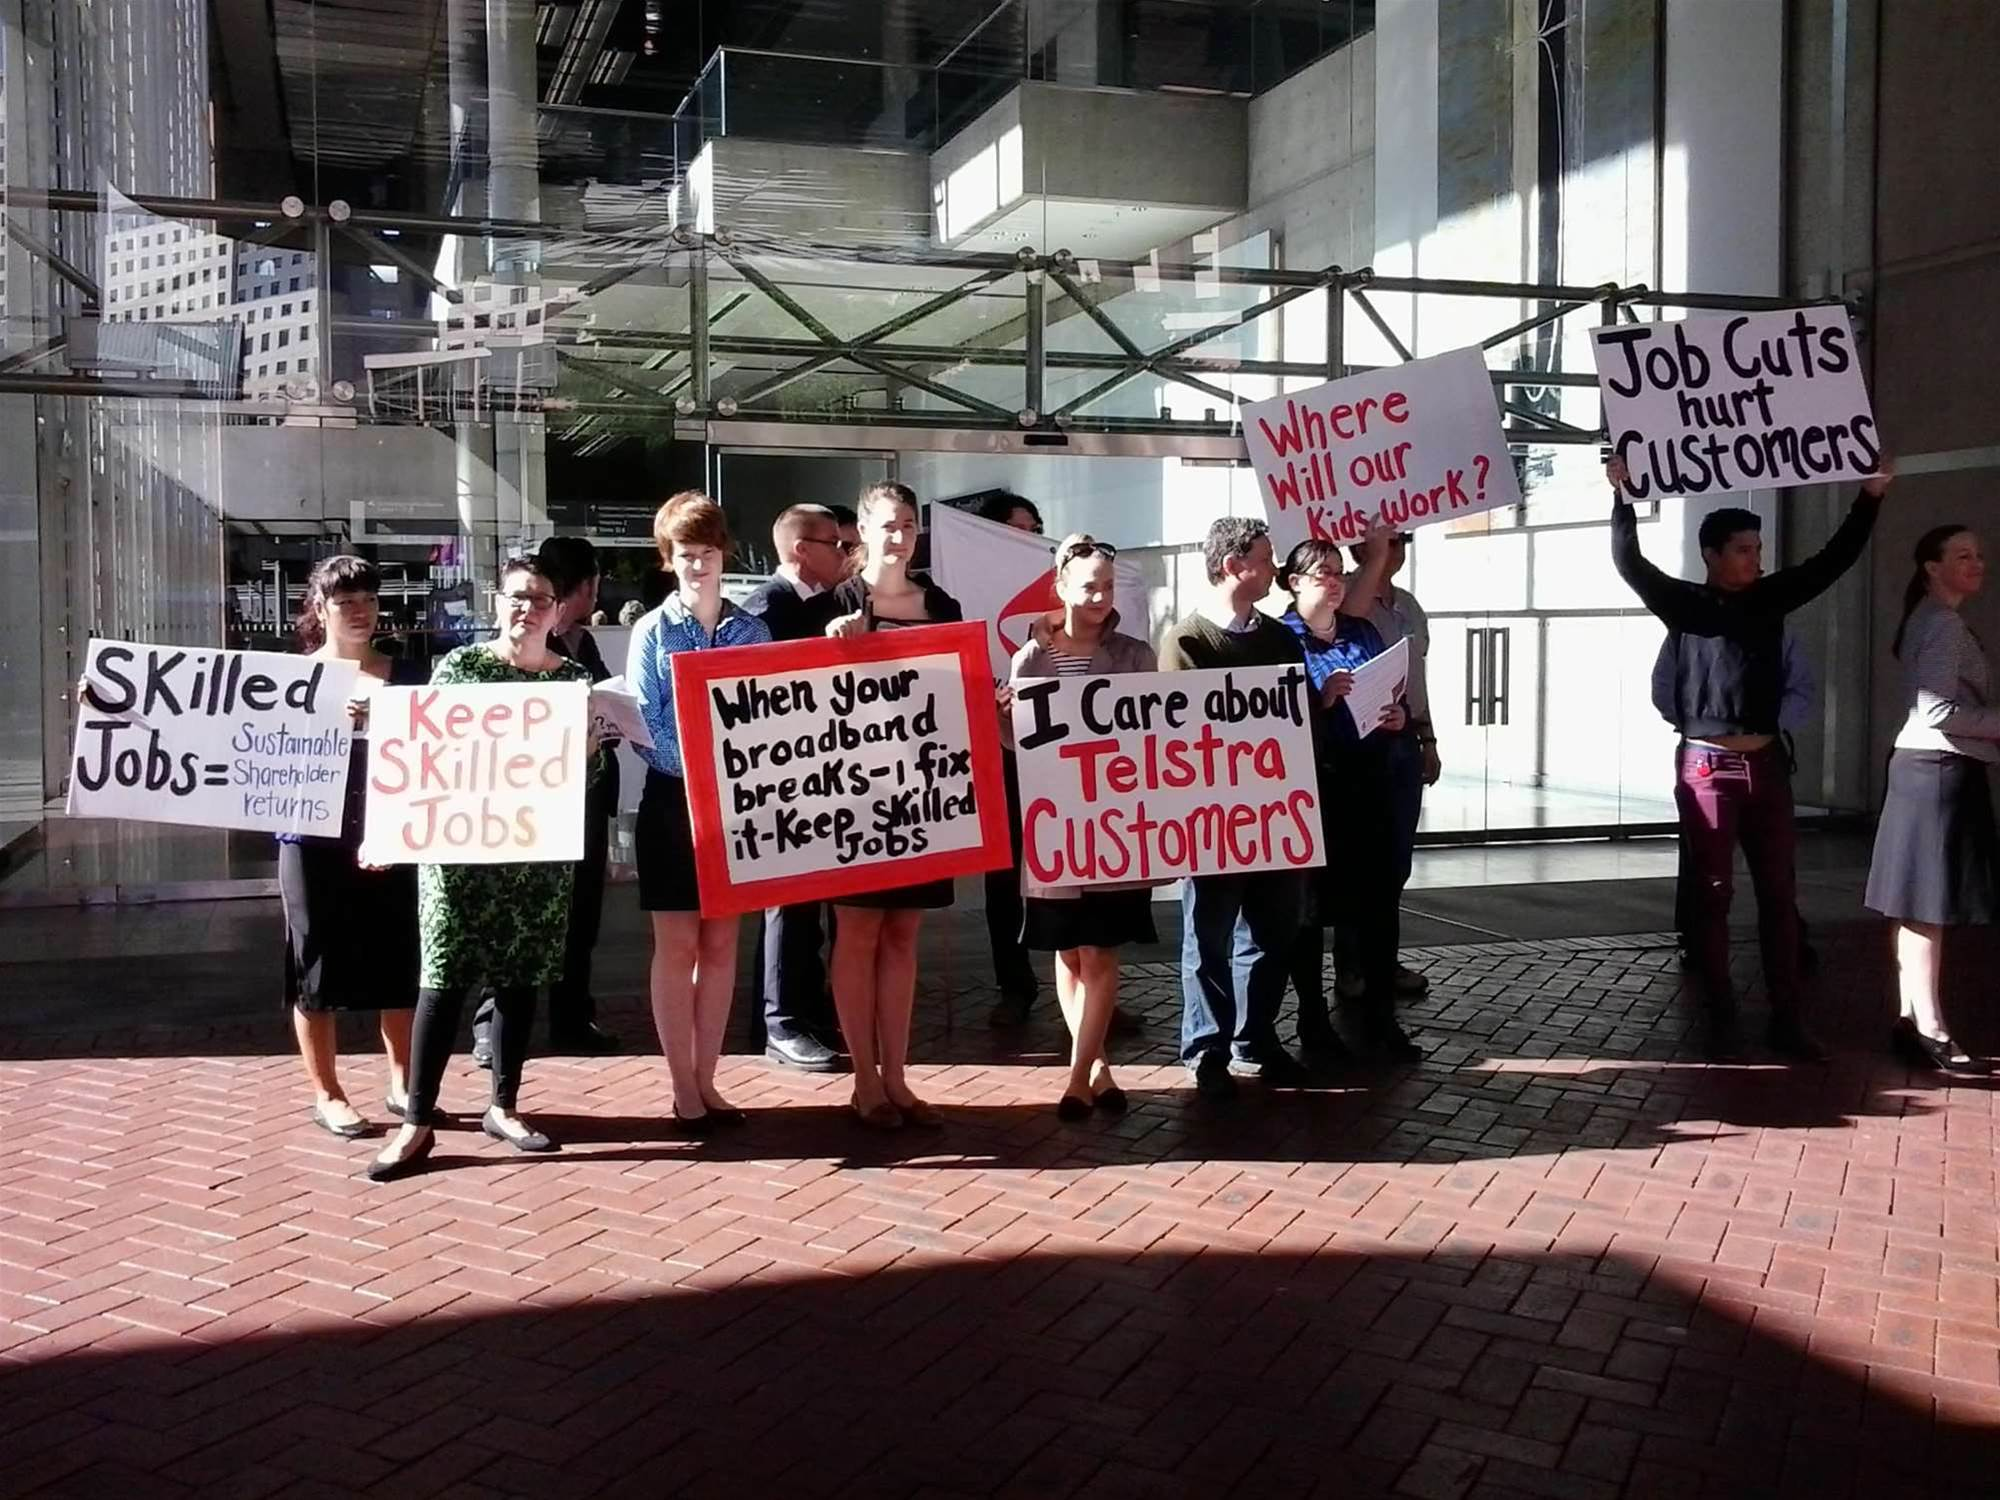 Photos: Union protests Telstra job cuts